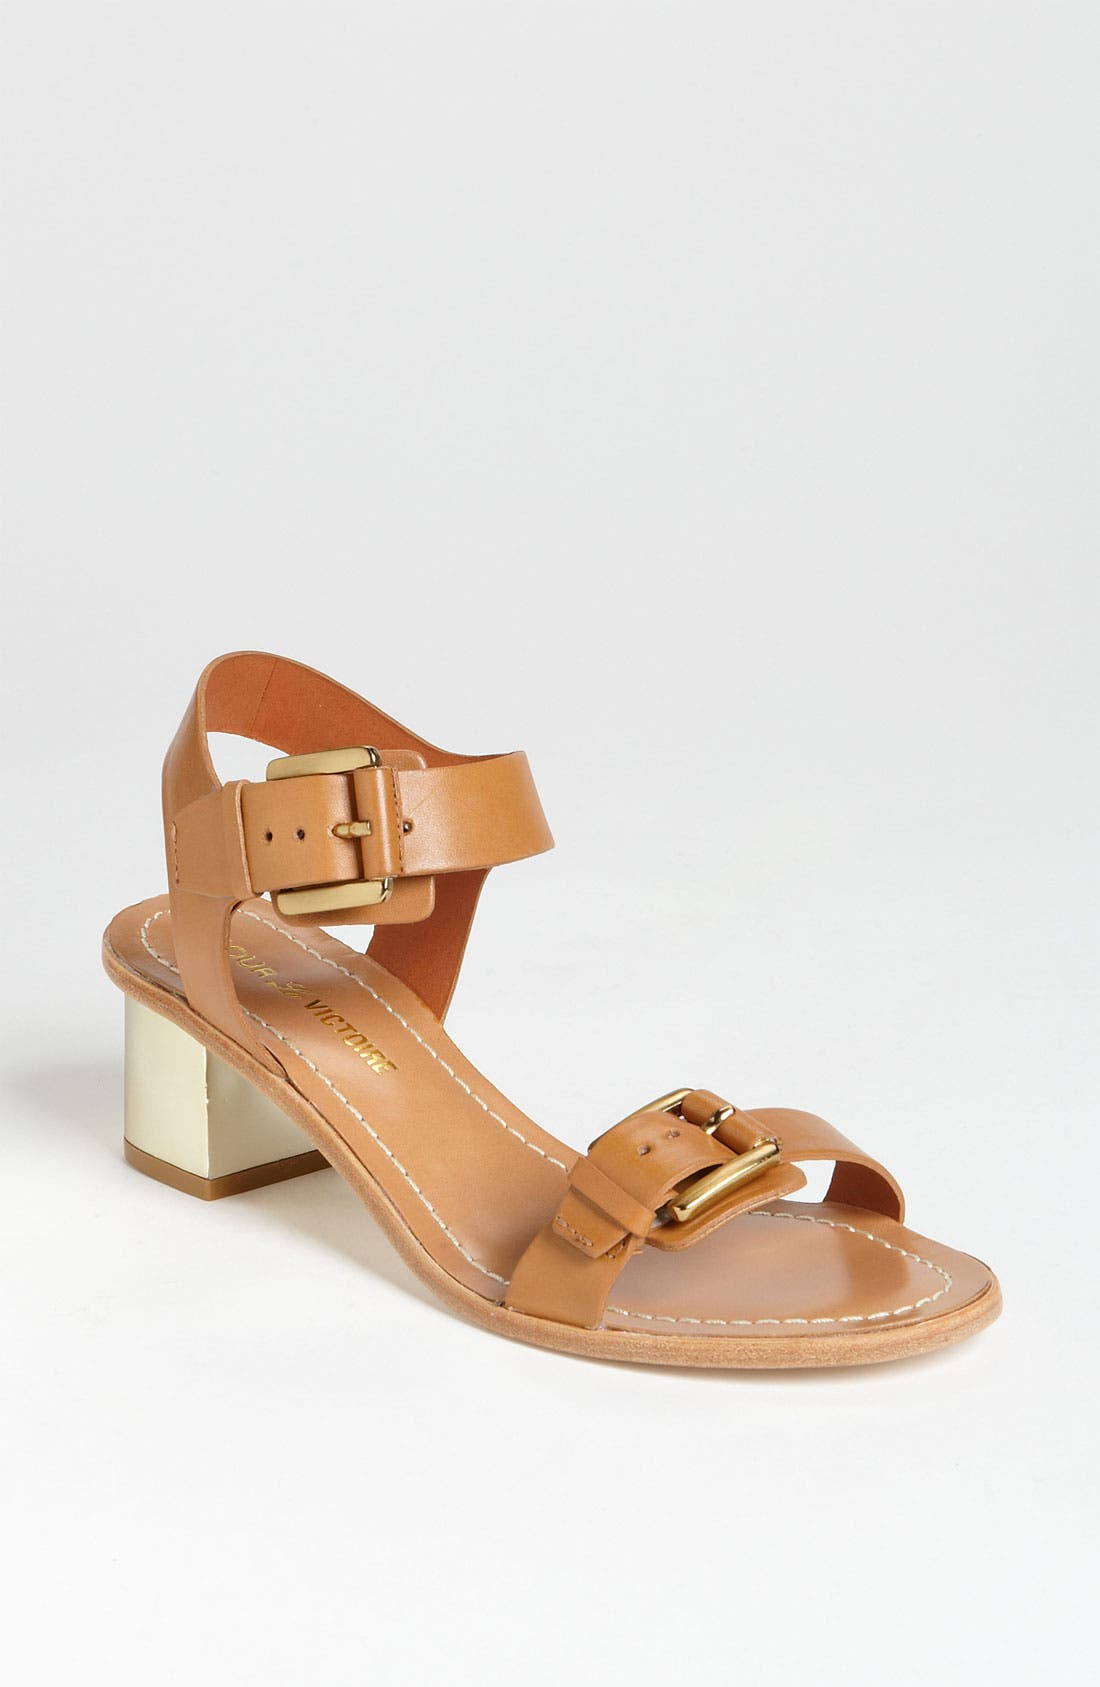 Alternate Image 1 Selected - Pour la Victoire 'Ilissa' Sandal